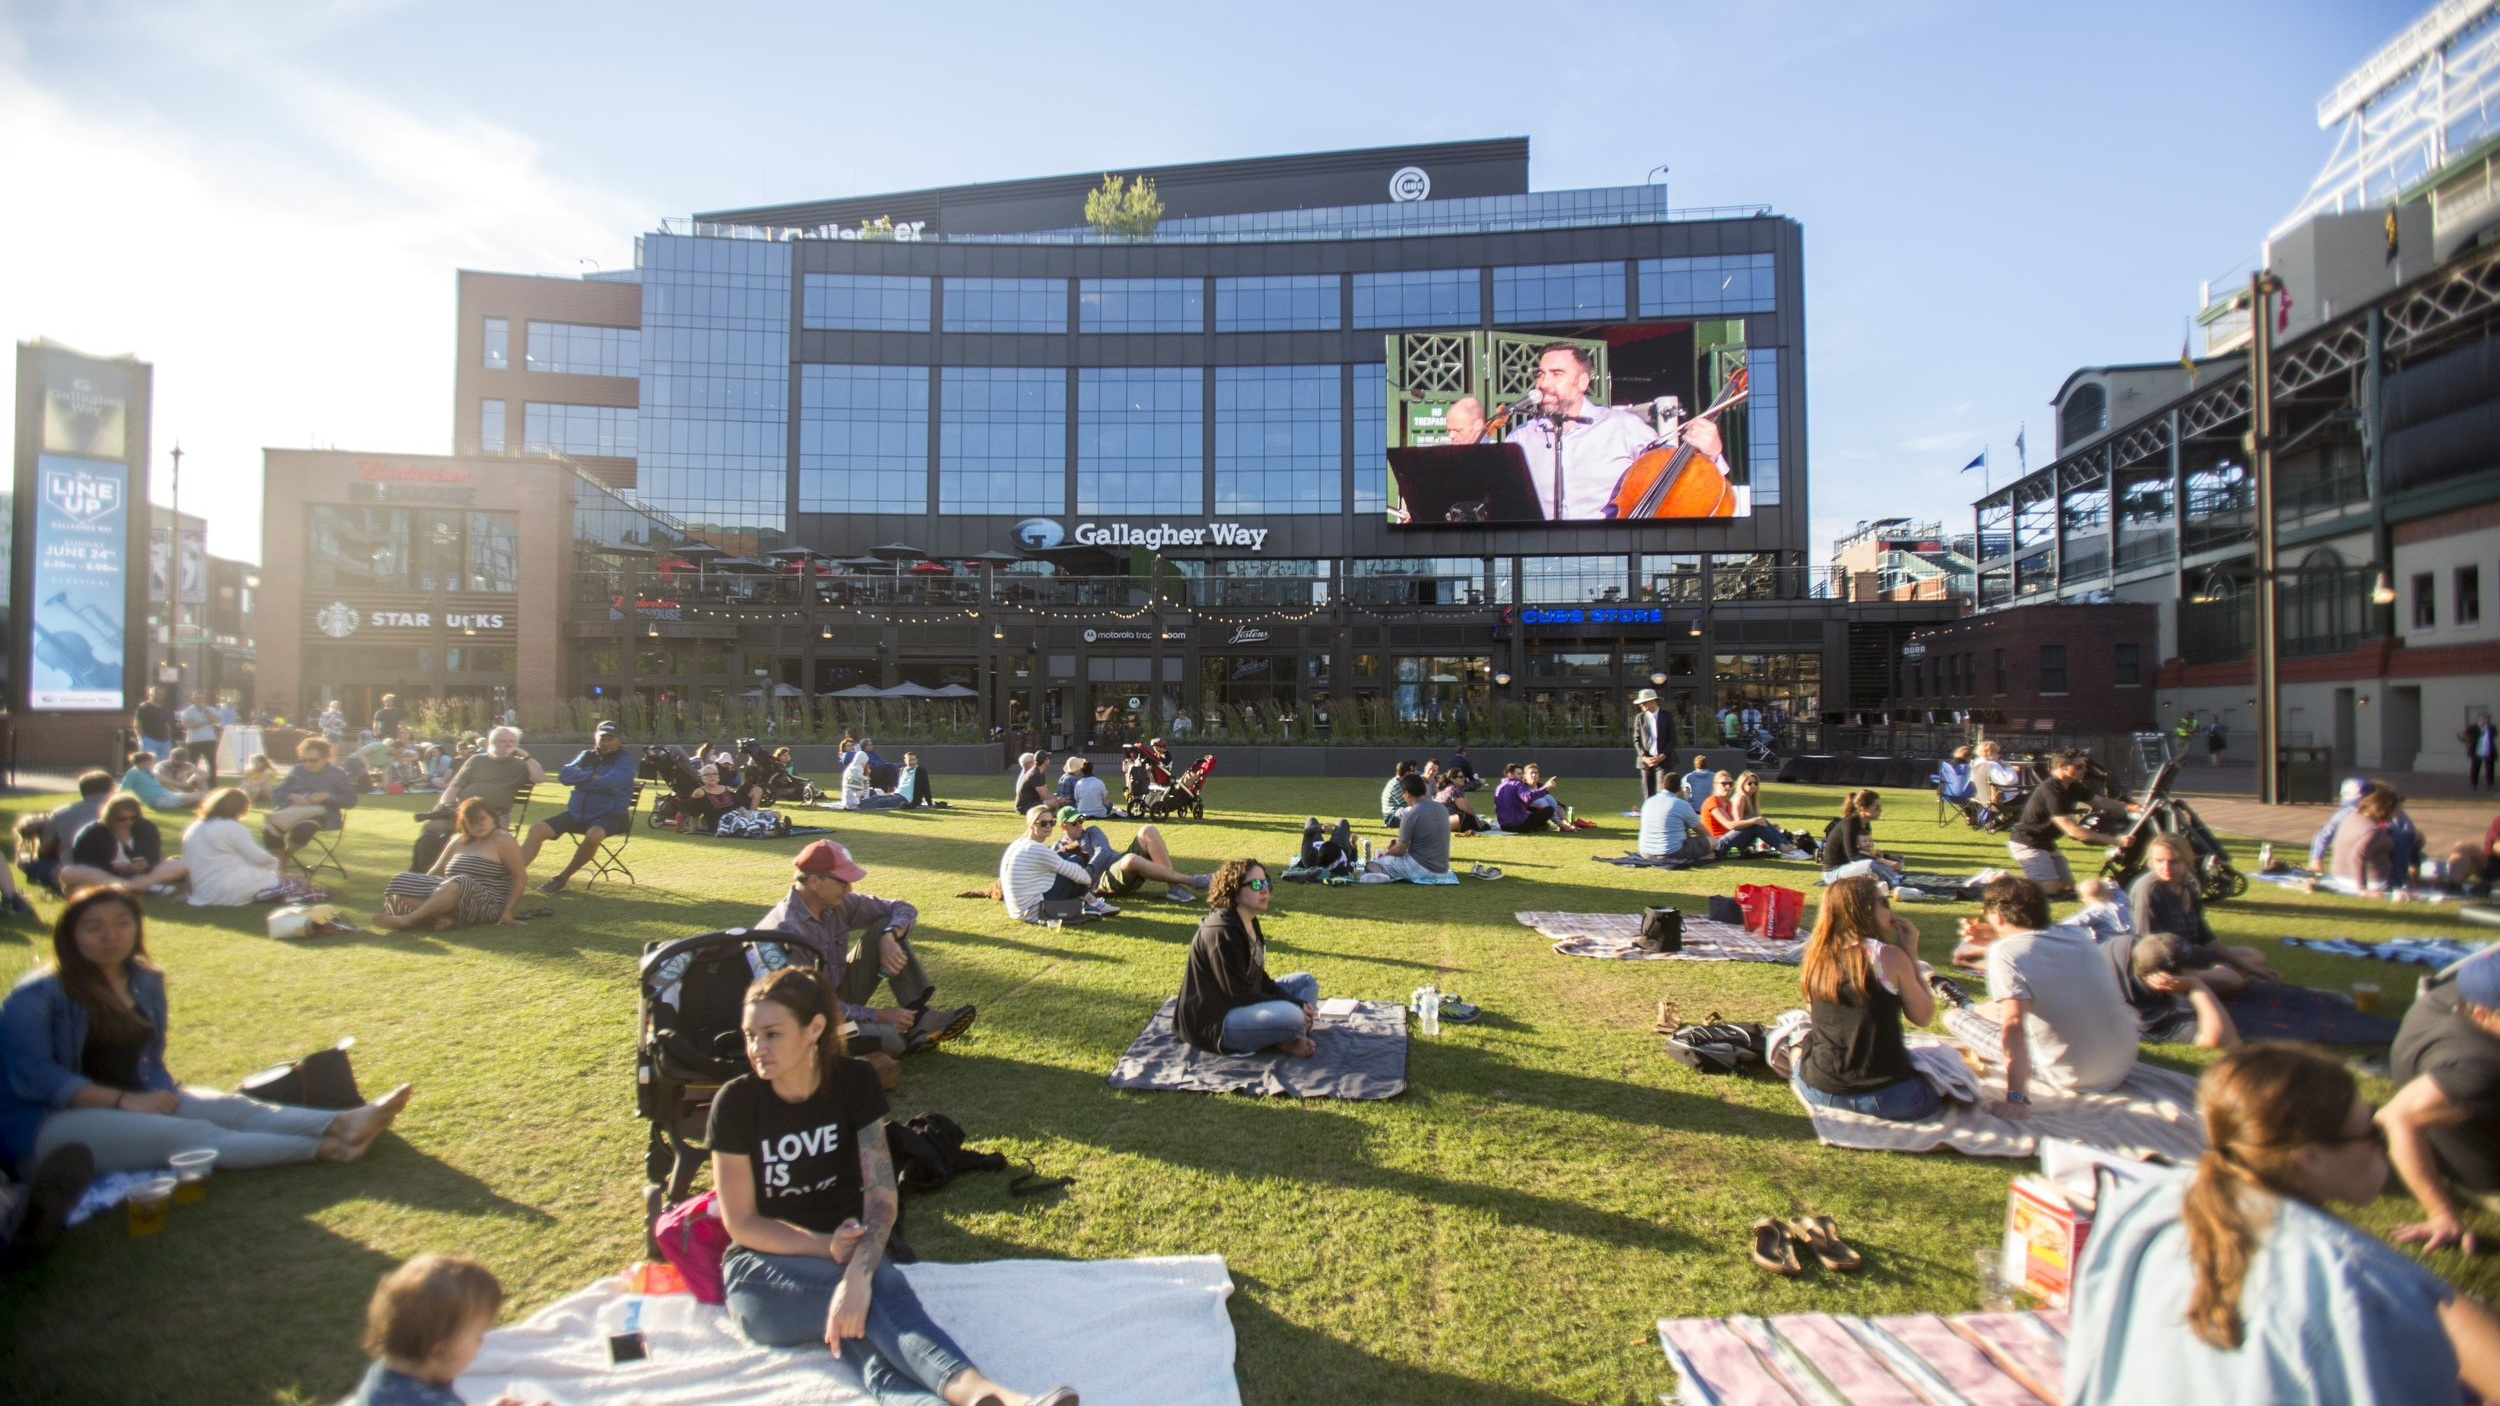 Gallagher Way - WRIGLEYVILLE'S NEW GATHERING PLACELocated in the heart of Wrigleyville, Gallagher Way offers a beautiful open-air destination for movies, concerts, farmers markets, community events and much more.